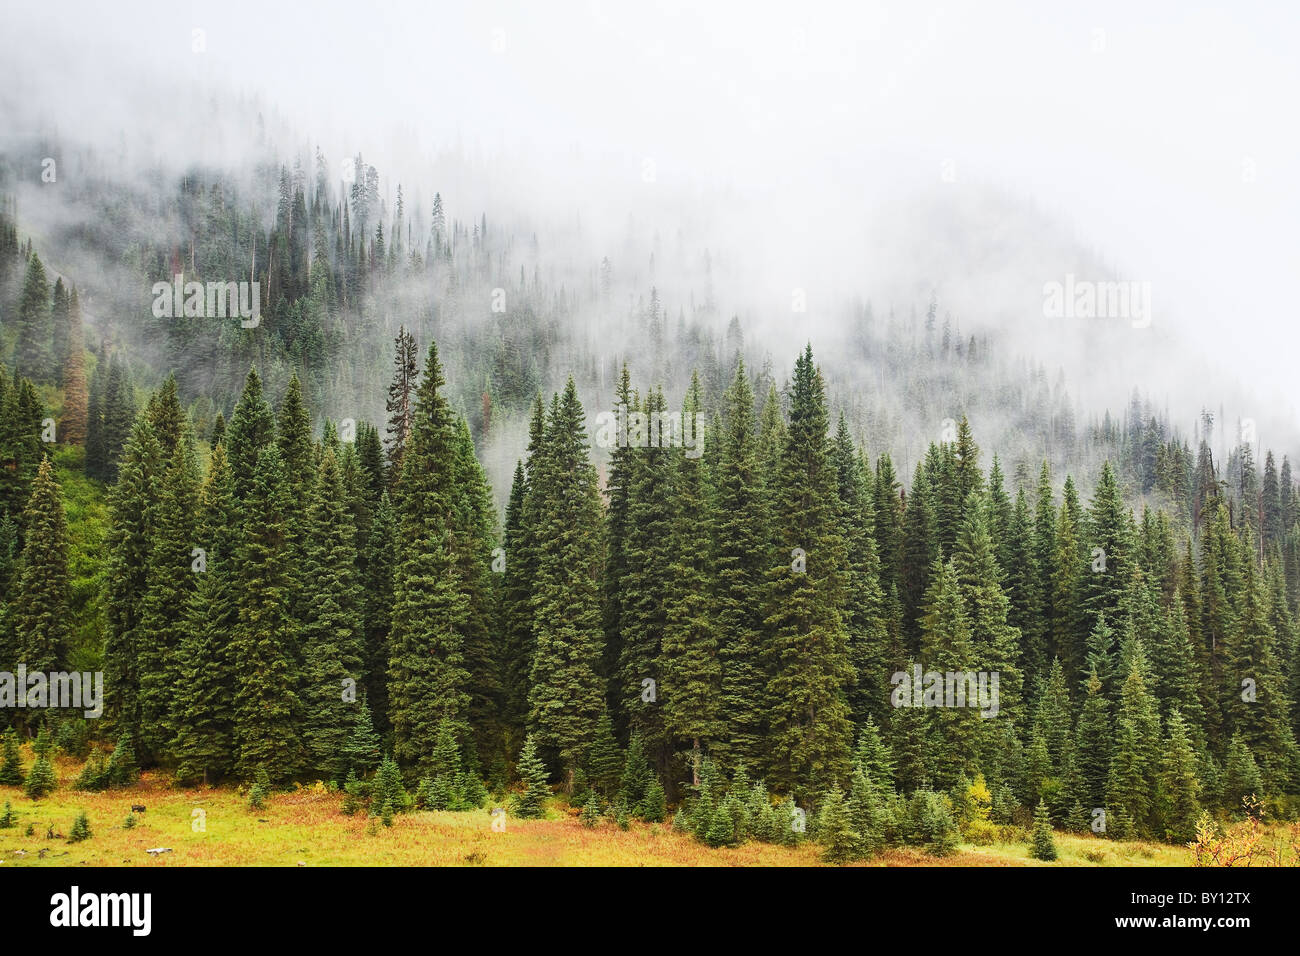 Foggy evergreen forest in the Canadian Rockies.  Yoho National Park, British Columbia, Canada. - Stock Image